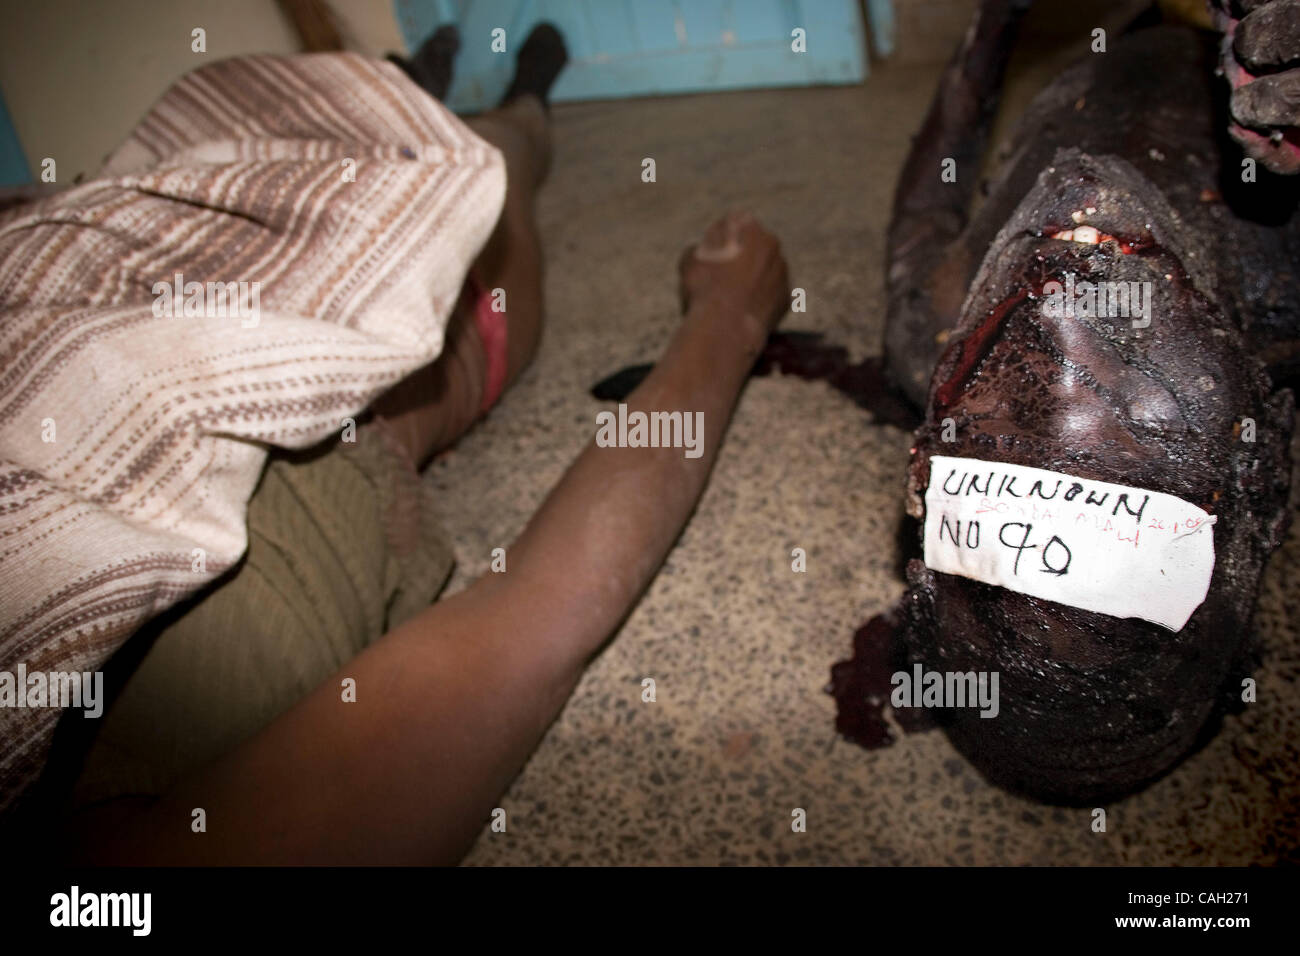 Provincial Municipal Mortuary, Nakuru Bodies Littered The Floor  Highlighting The Mortuary Was At Full Capacity. Most Of The Victims Either  Died Of Gunshot ...